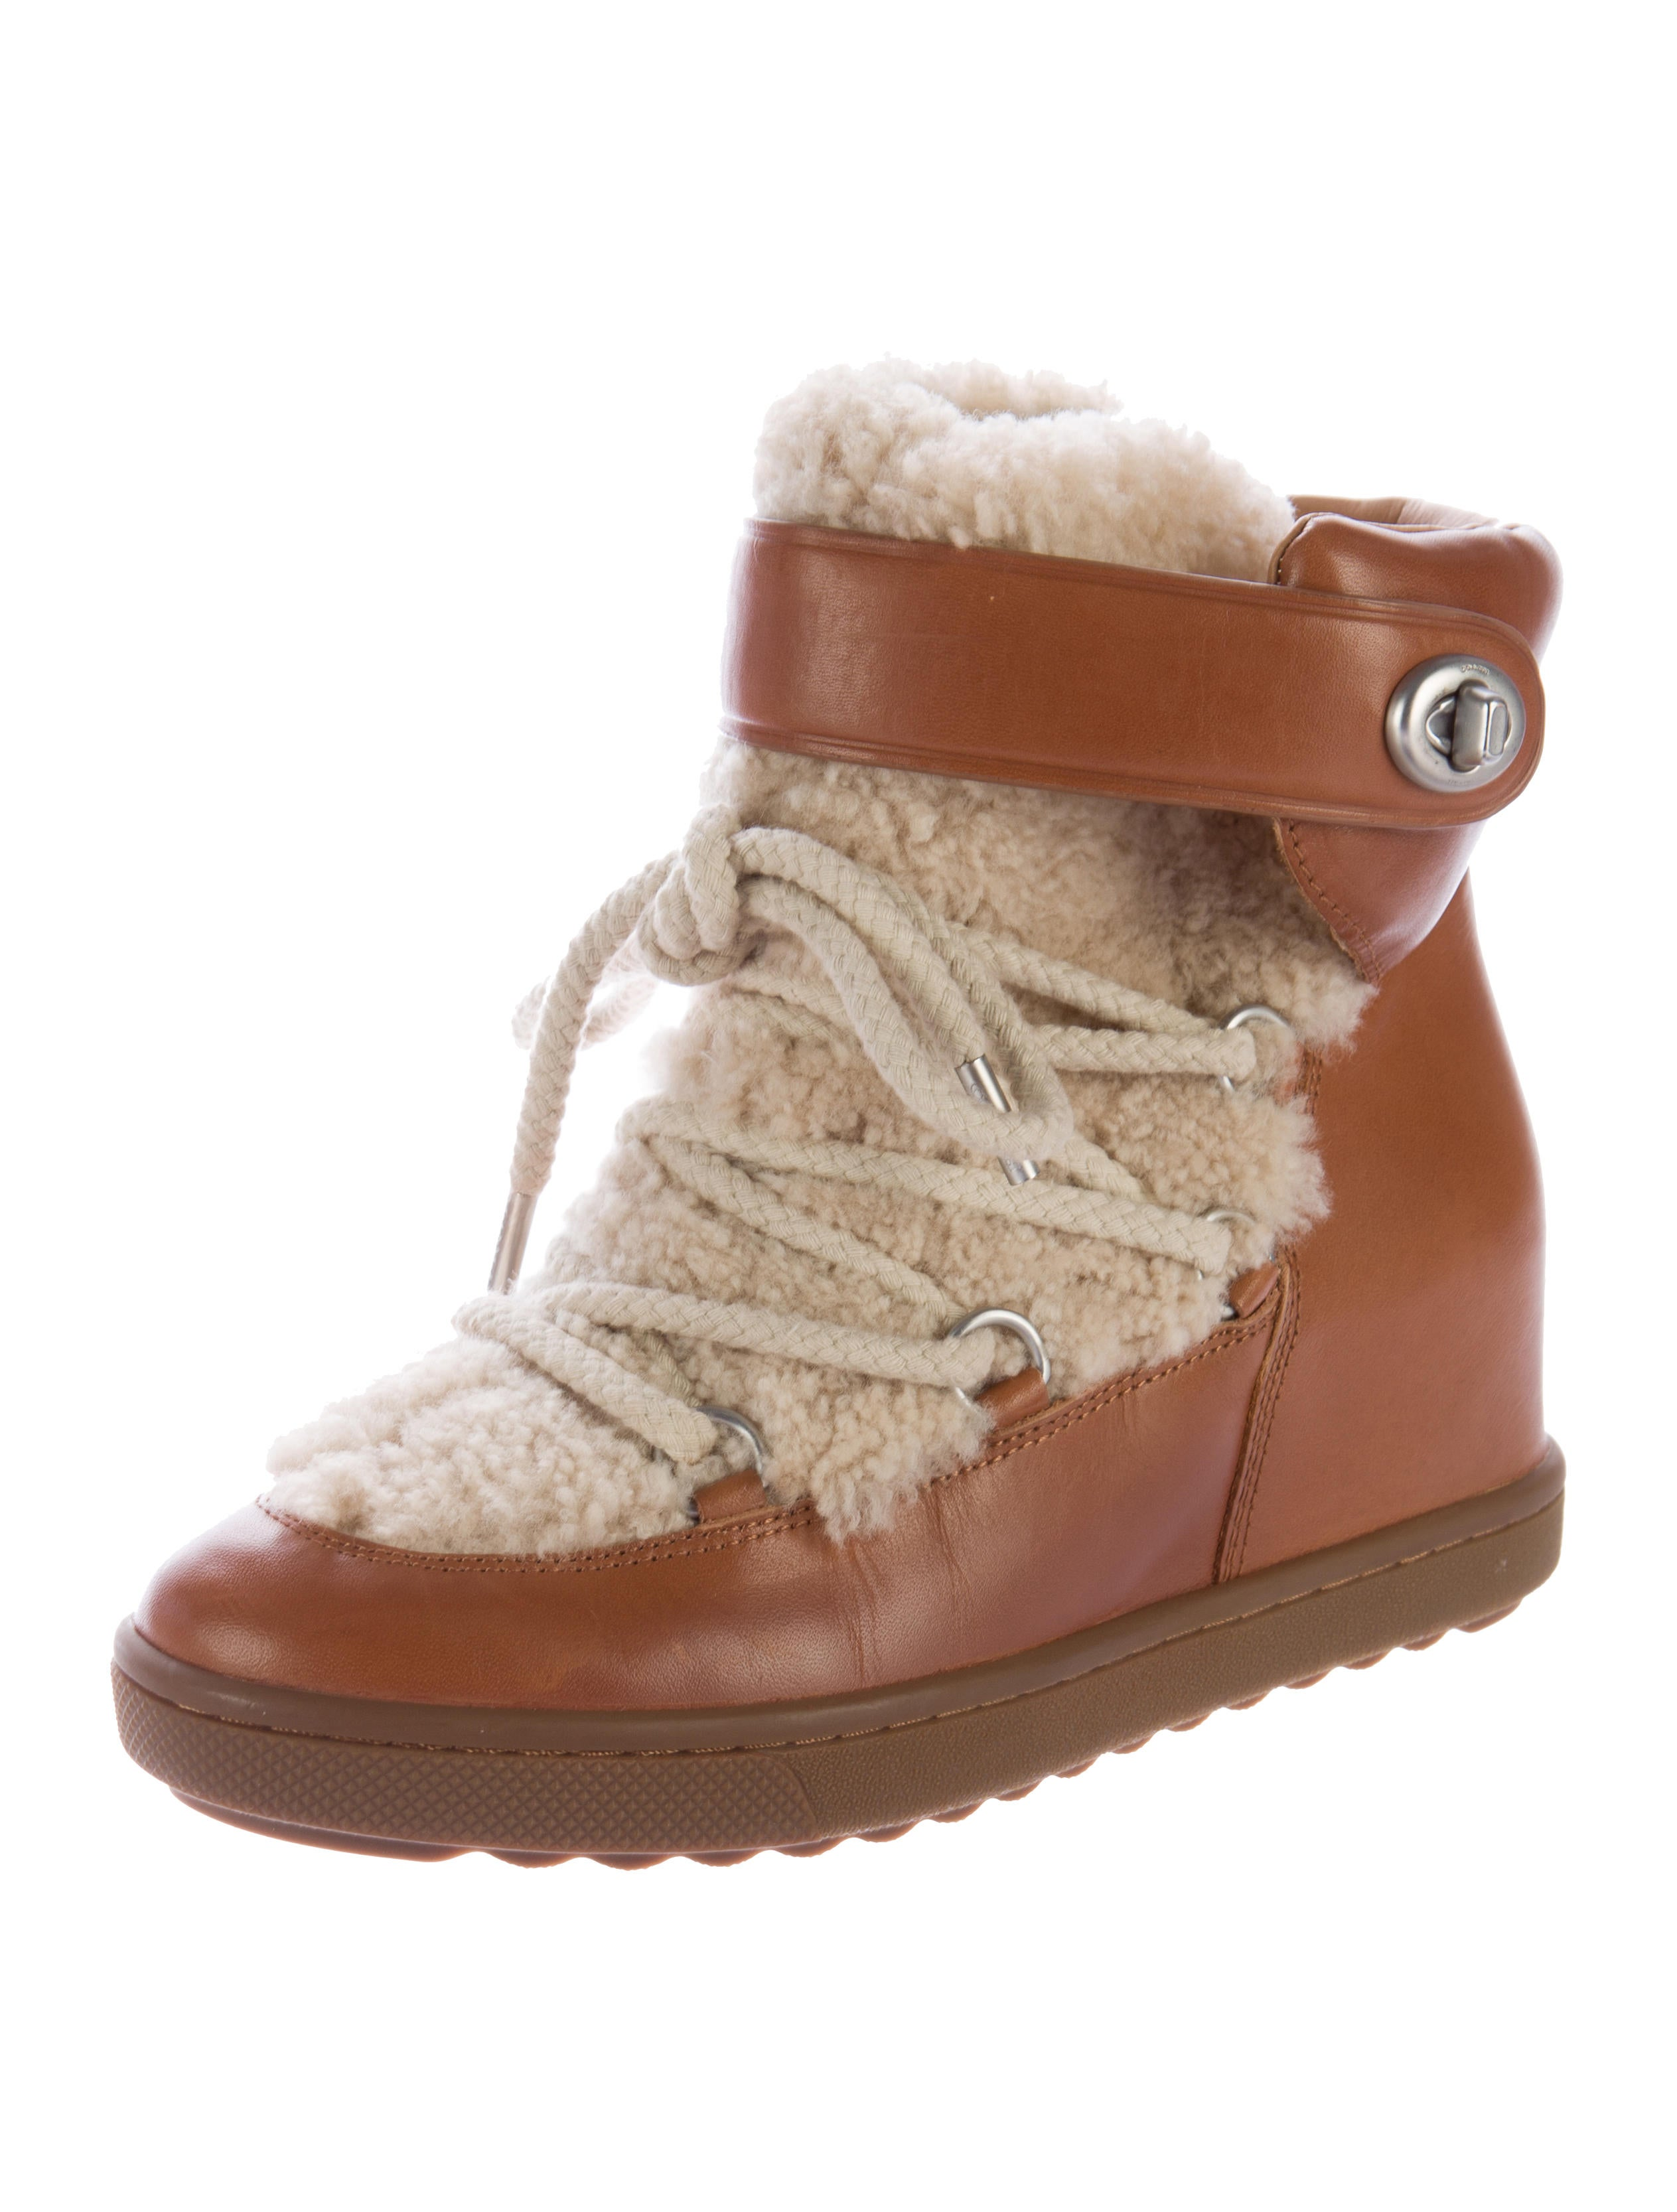 Monroe Shearling Ankle Boots